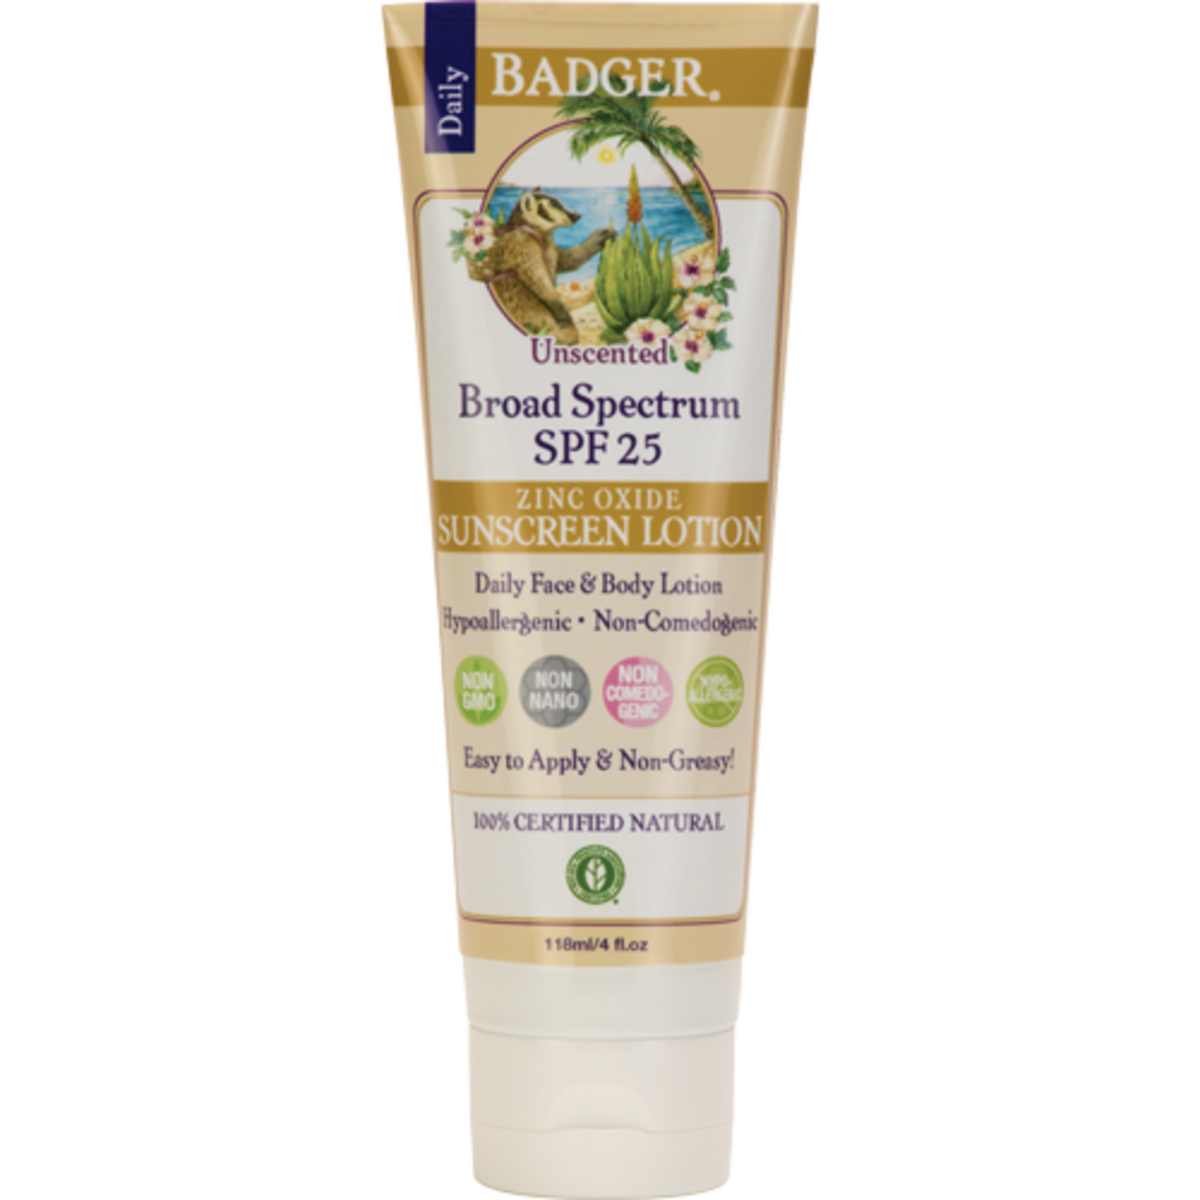 Badger SPF 25 Sunscreen Lotion Unscented